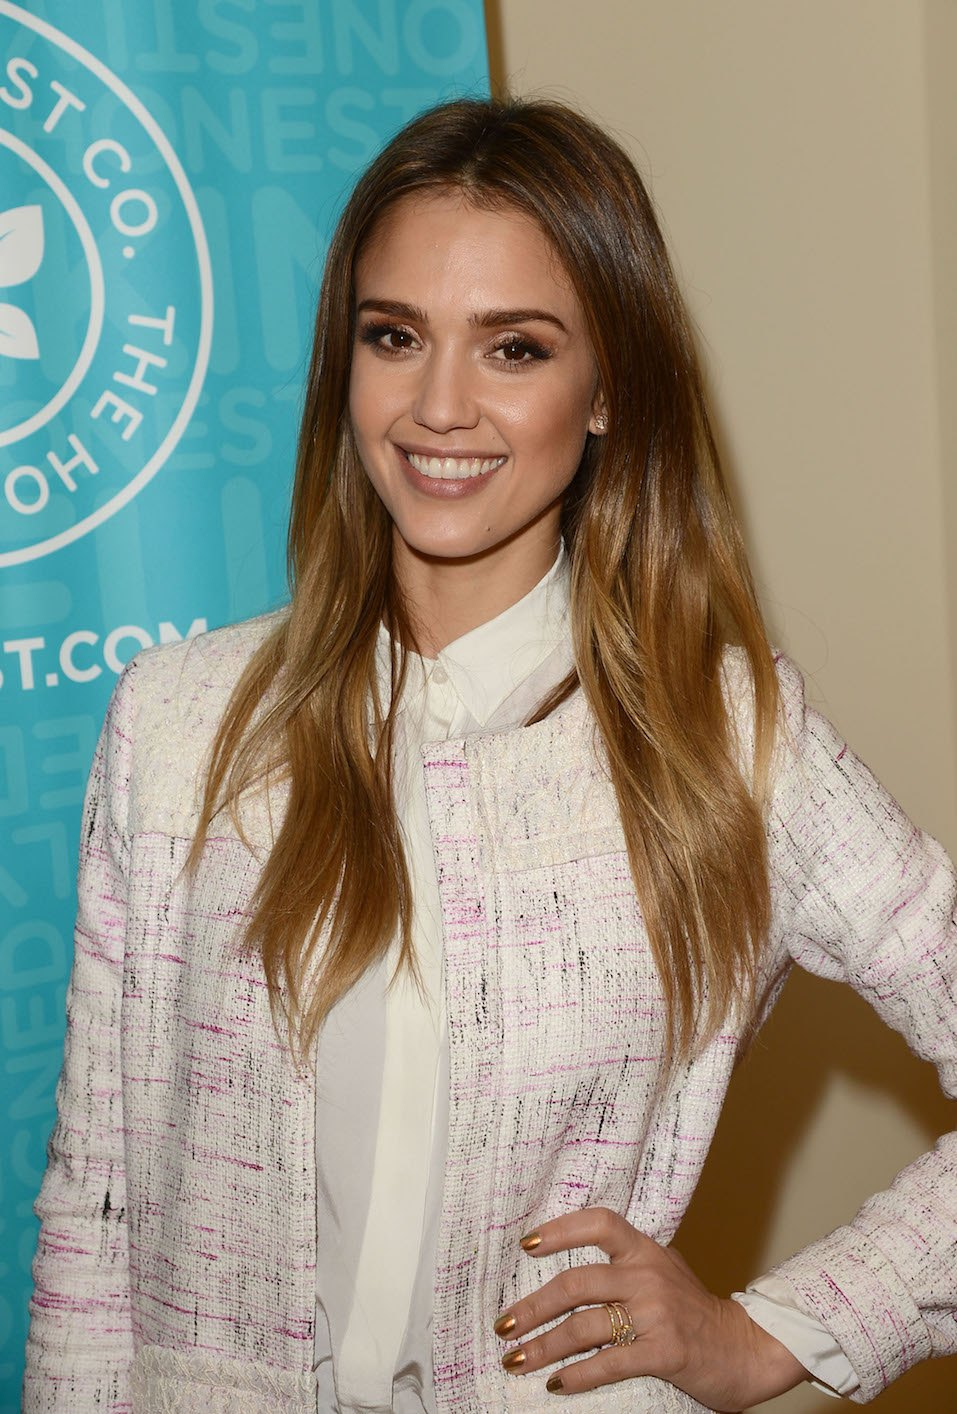 Jessica Alba attends The Honest Company